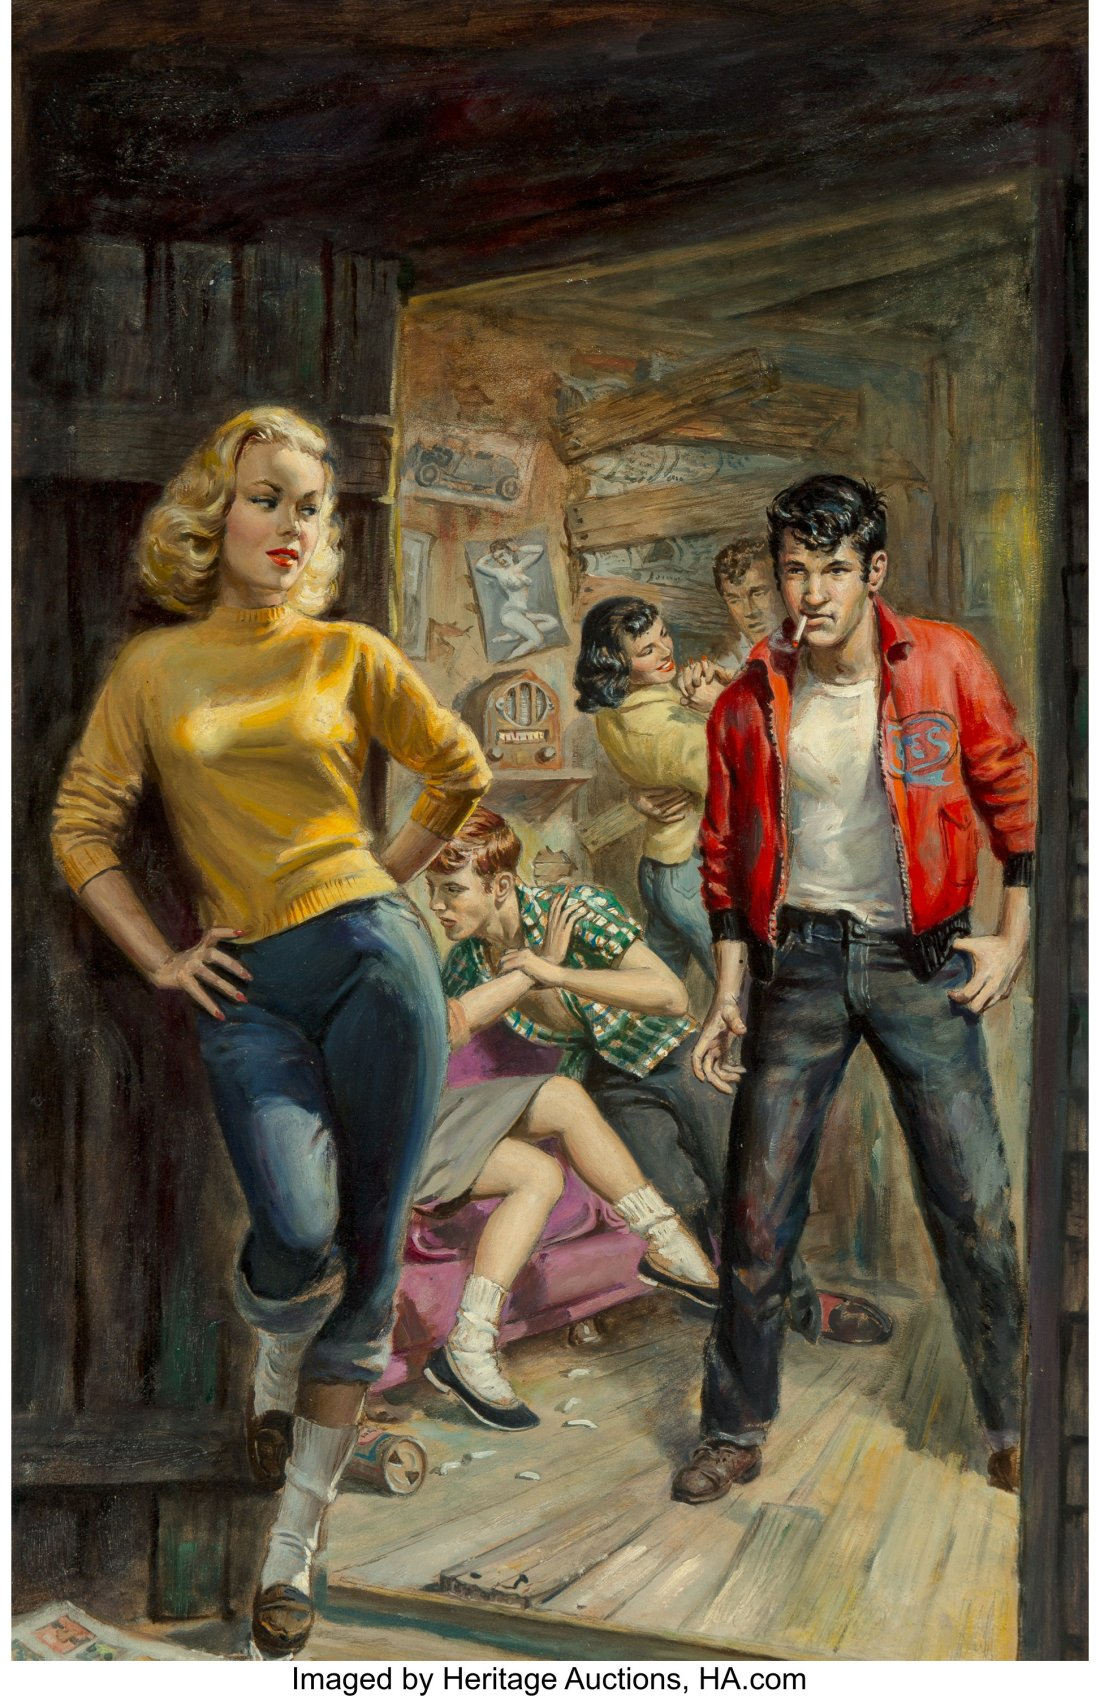 D_for_Delinquent_paperback_book_cover_1958_Heritage_Auctions.jpg